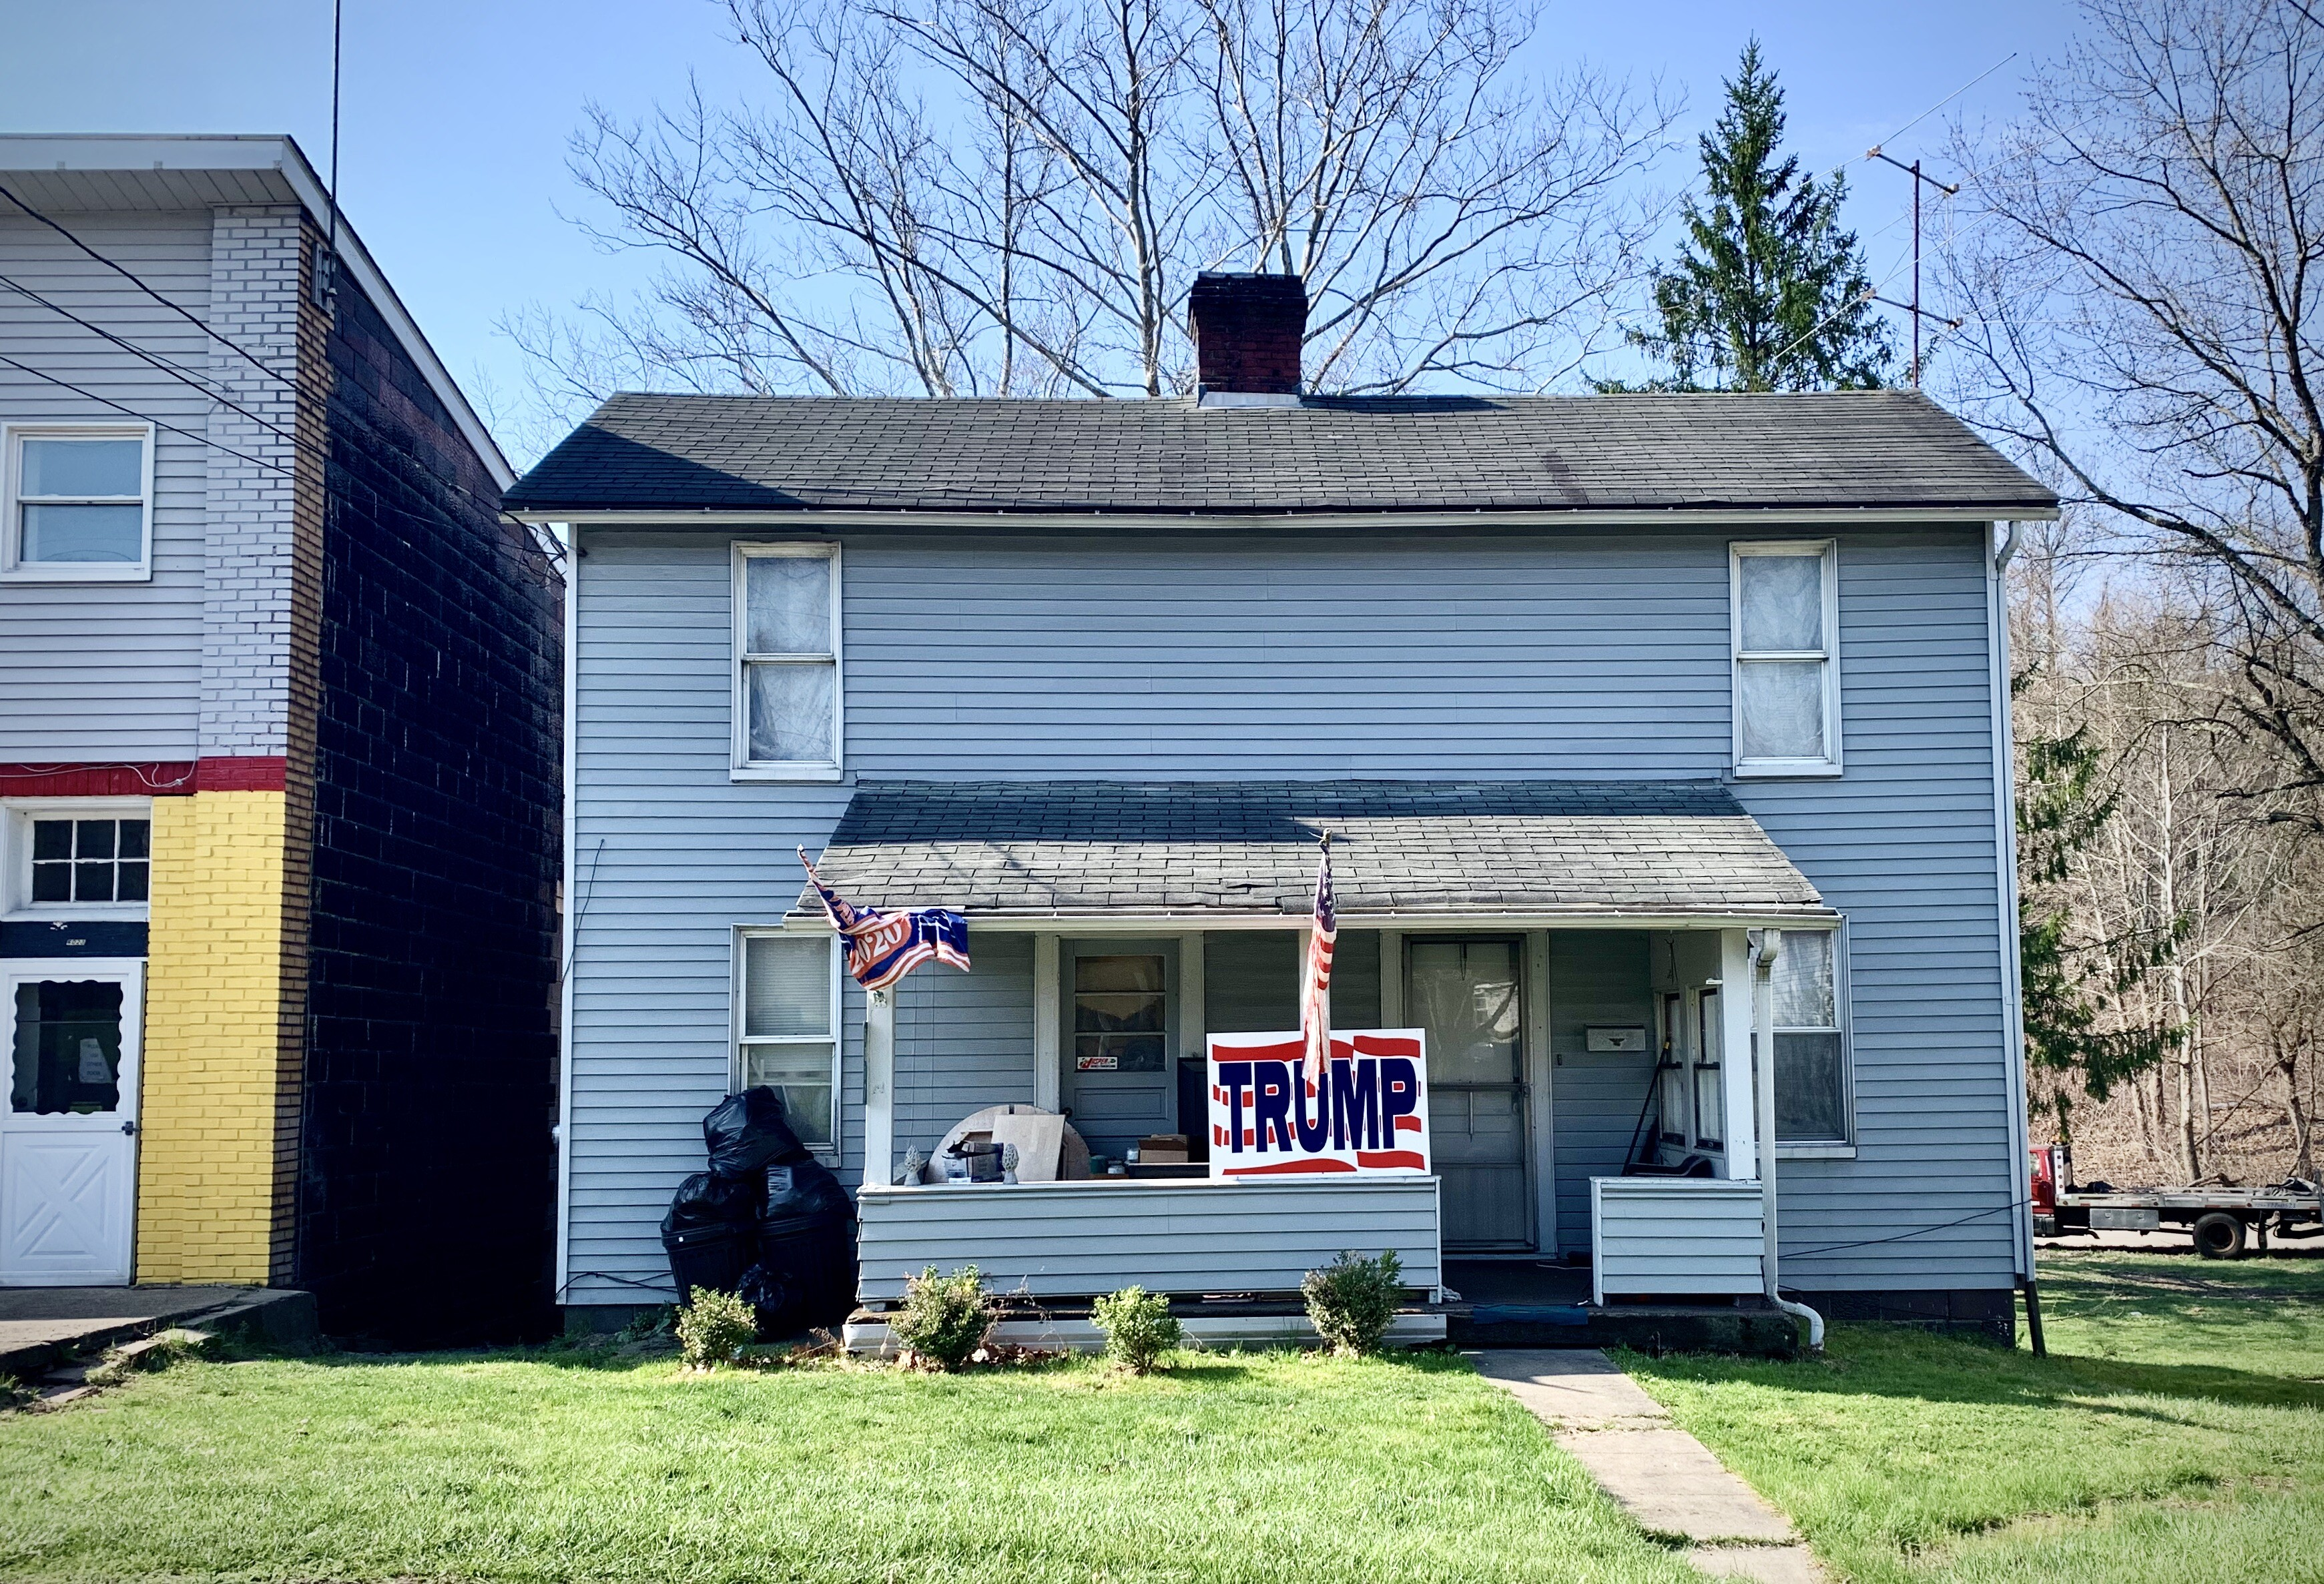 PENNSYLVANIA - From wealthy suburban enclaves to the middle-class post World War II bedroom communities located the first ring outside the city to the gritty blue collar city neighborhoods themselves Trump signs are everywhere across t (2).jpeg